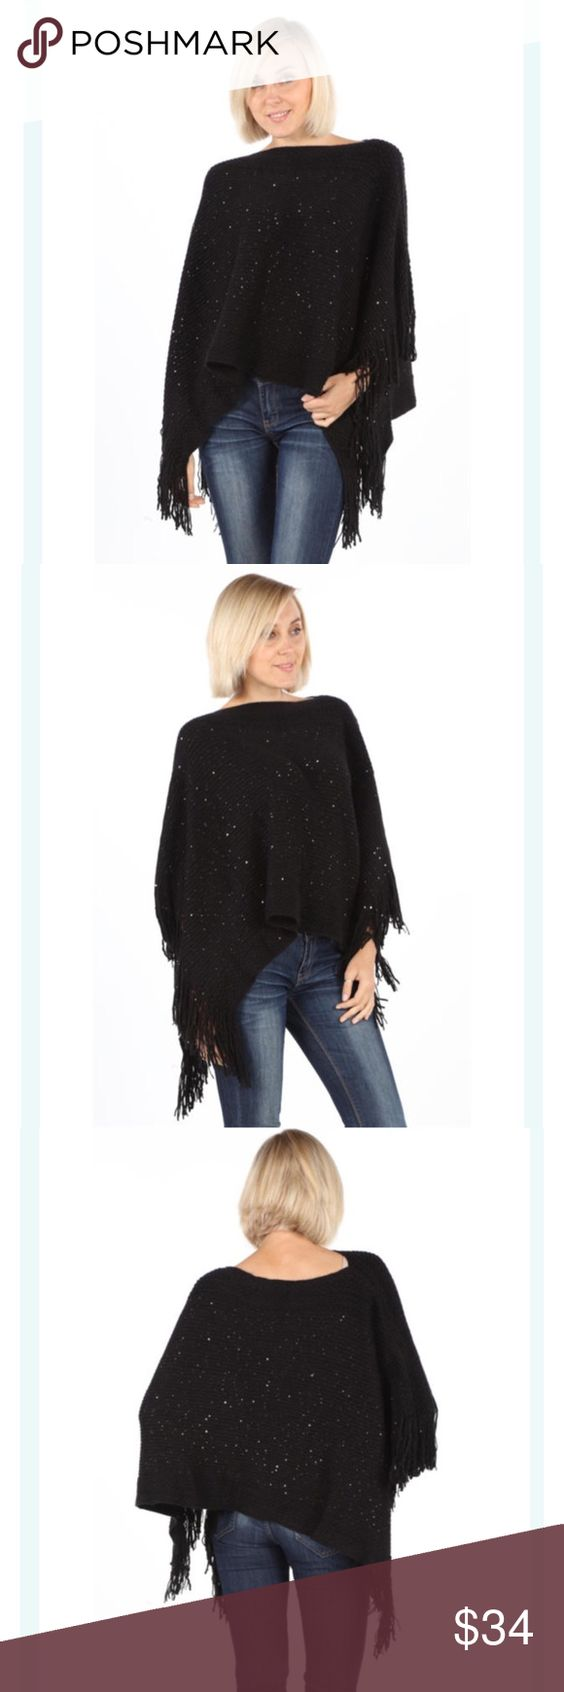 Poncho with sequin embroidery One Size poncho with fringe and sequin embroidery! Super soft! Sweaters Shrugs & Ponchos